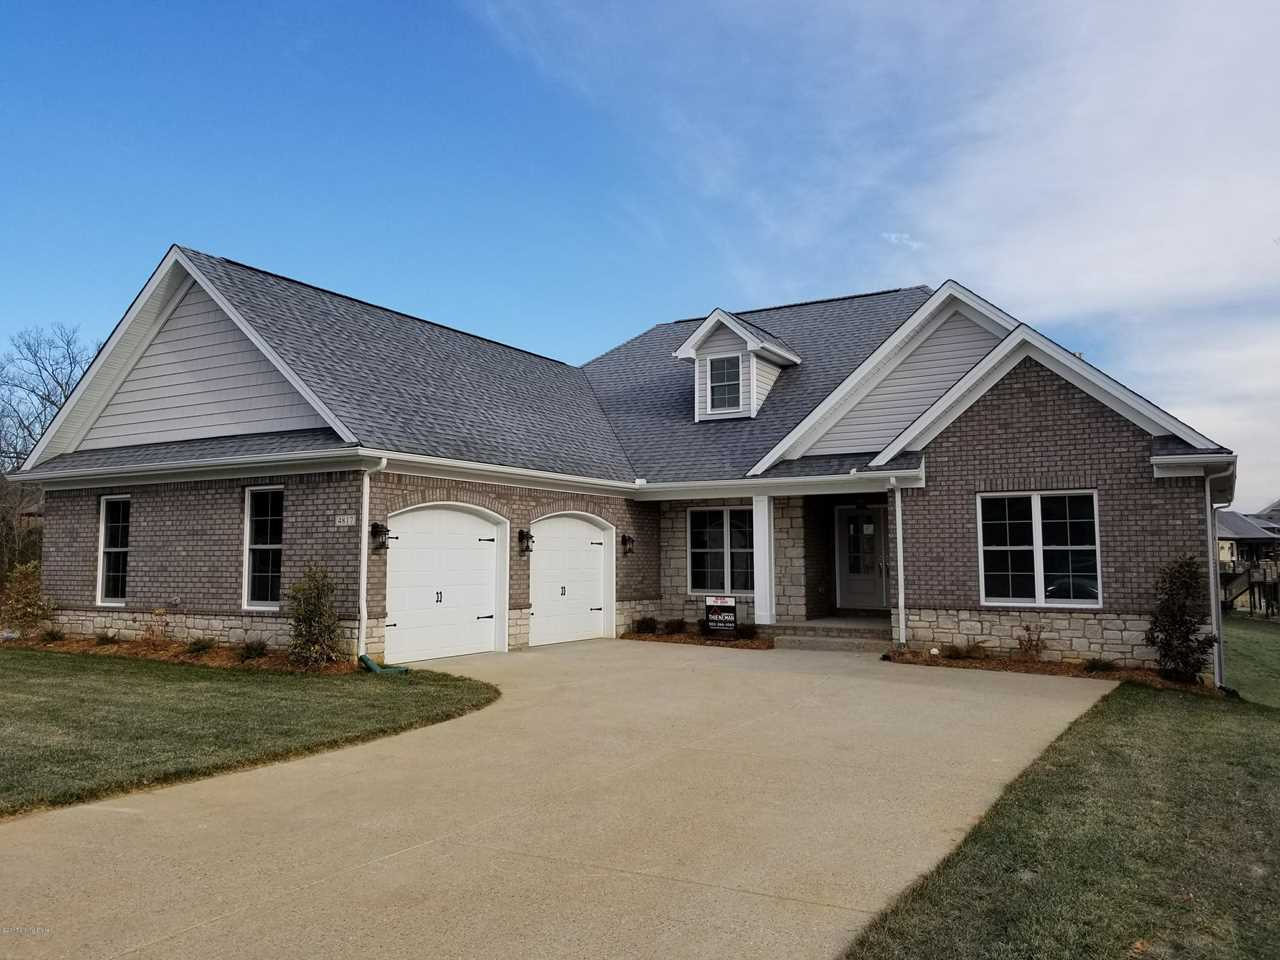 4817 Saddle Bend Way Louisville KY in Jefferson County - MLS# 1474499 | Real Estate Listings For Sale |Search MLS|Homes|Condos|Farms Photo 1